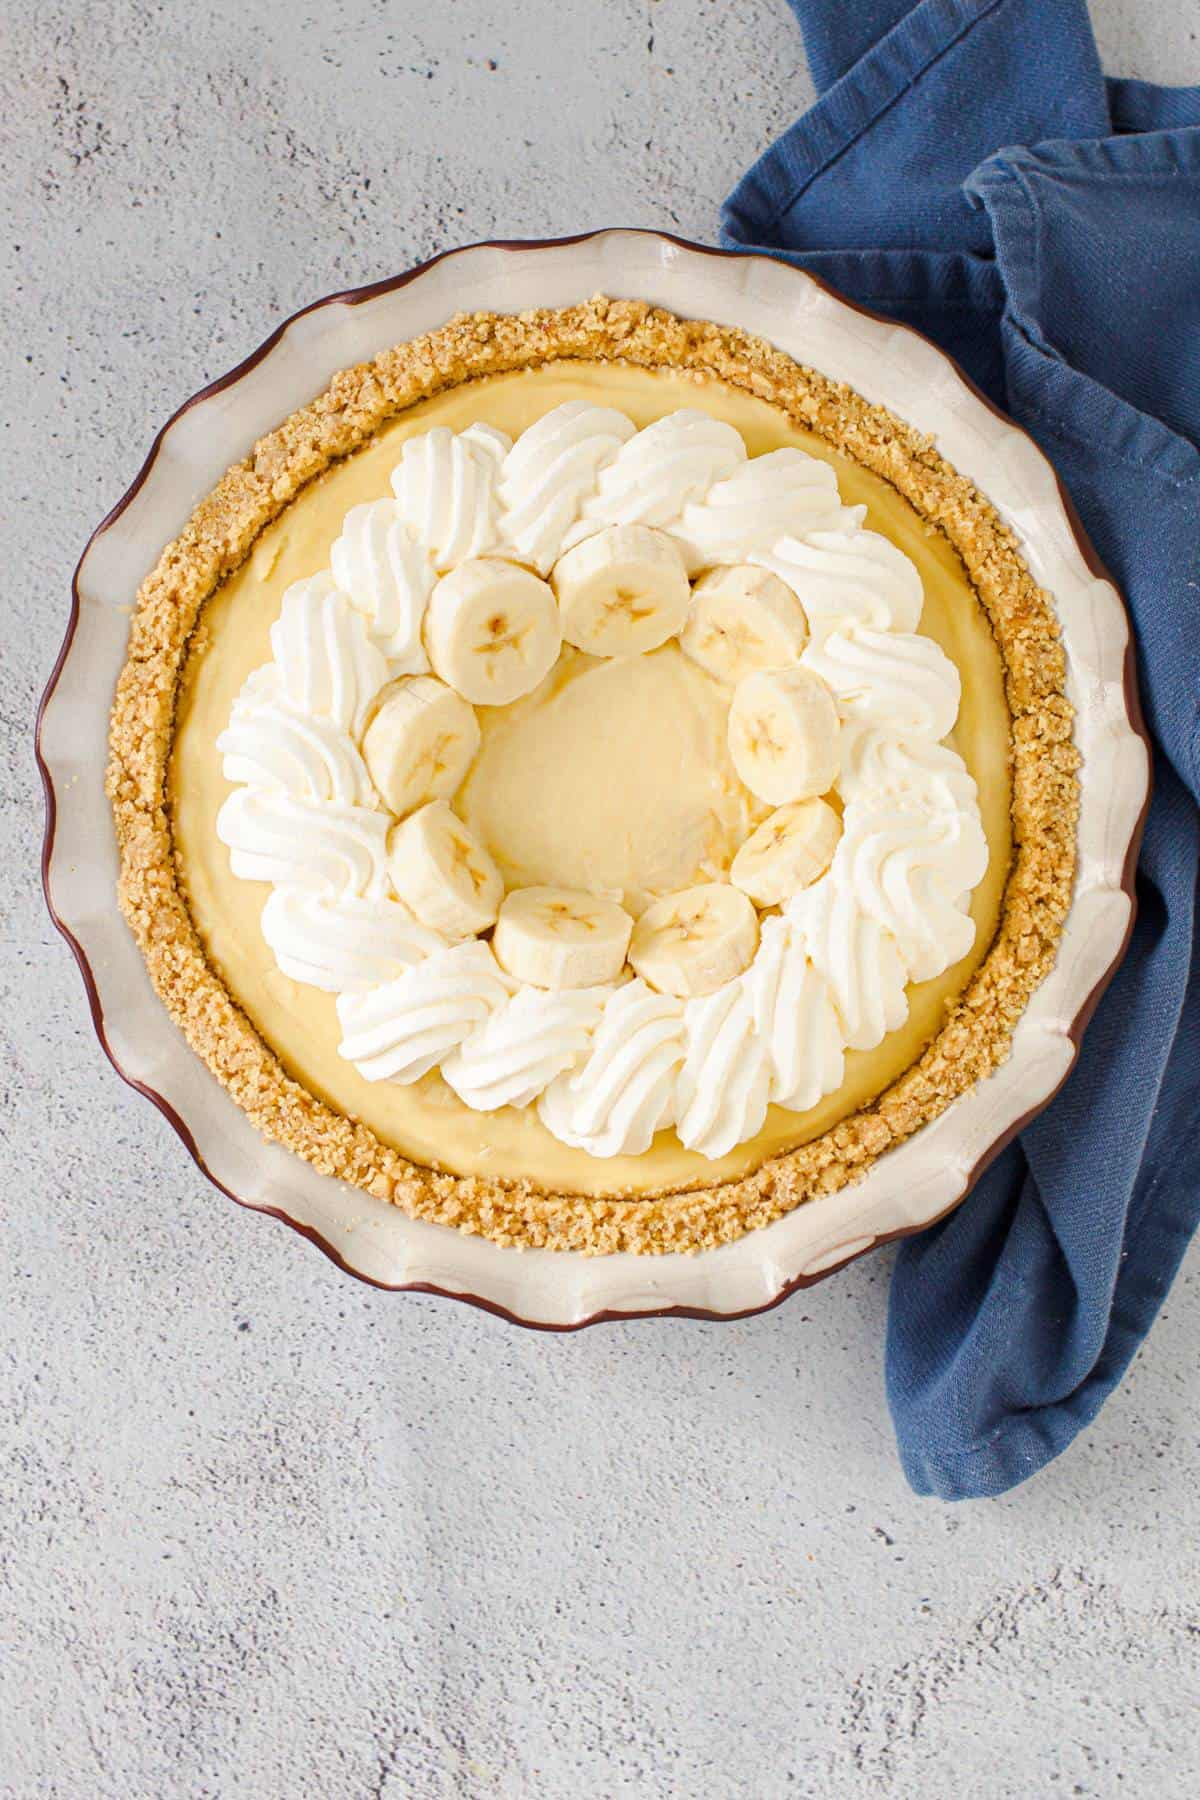 Homemade banana cream pie with whipped cream piping and fresh bananas.